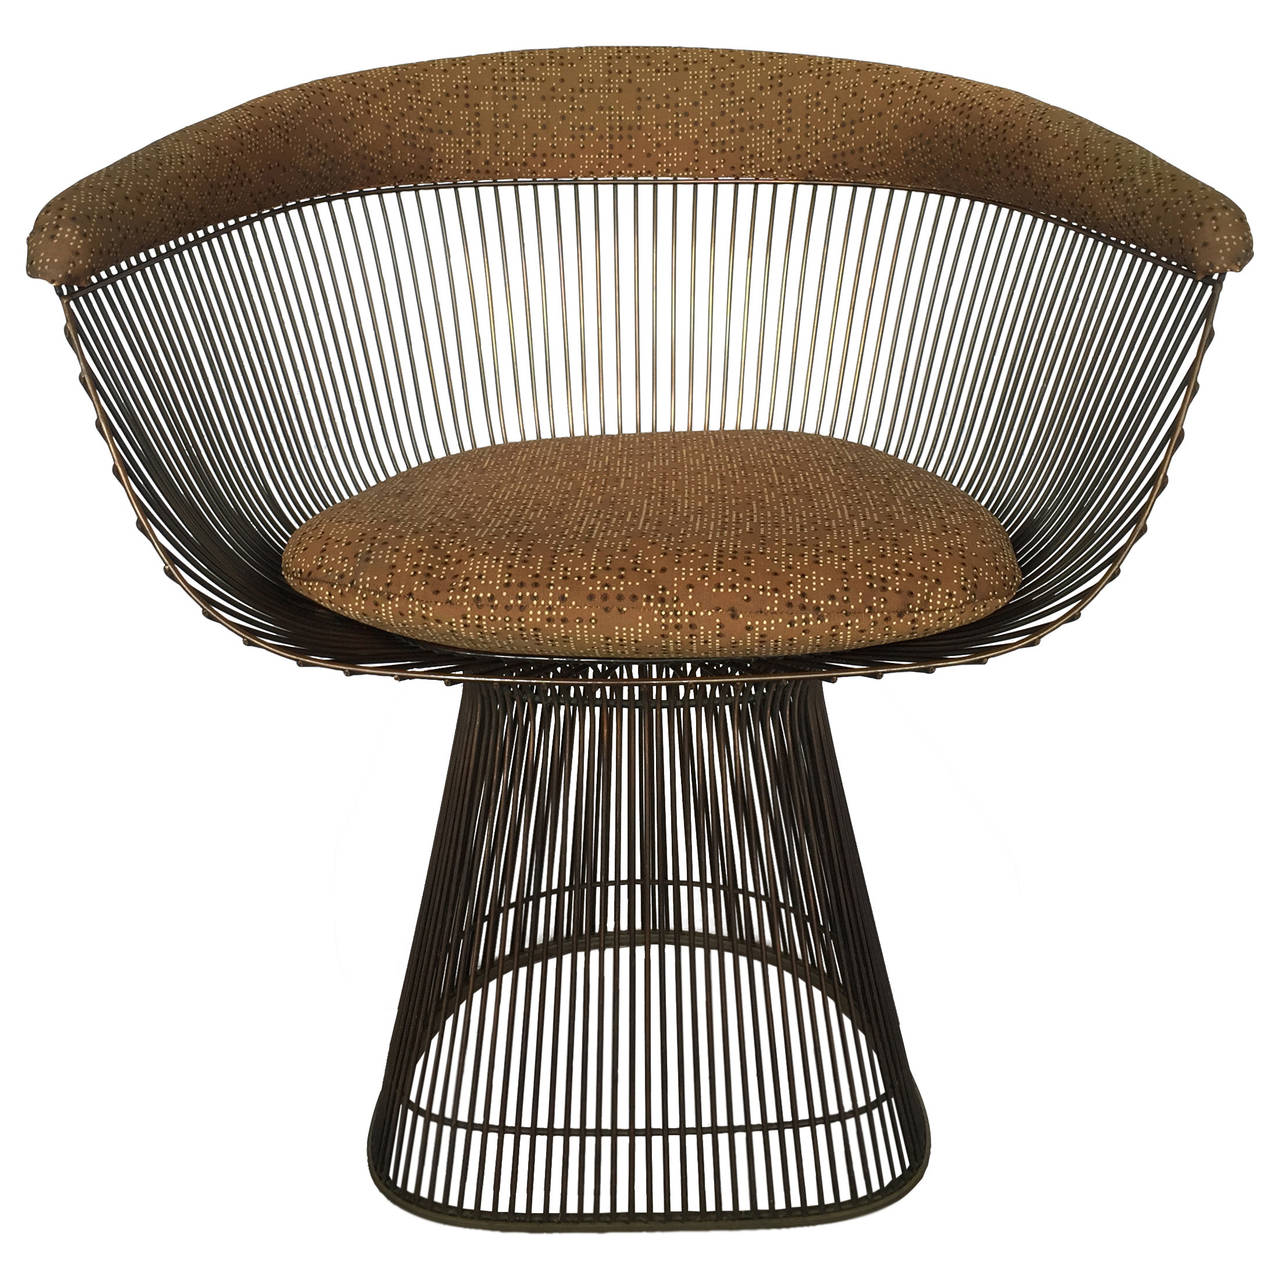 this warren platner bronze wire dining chairs is no longer available